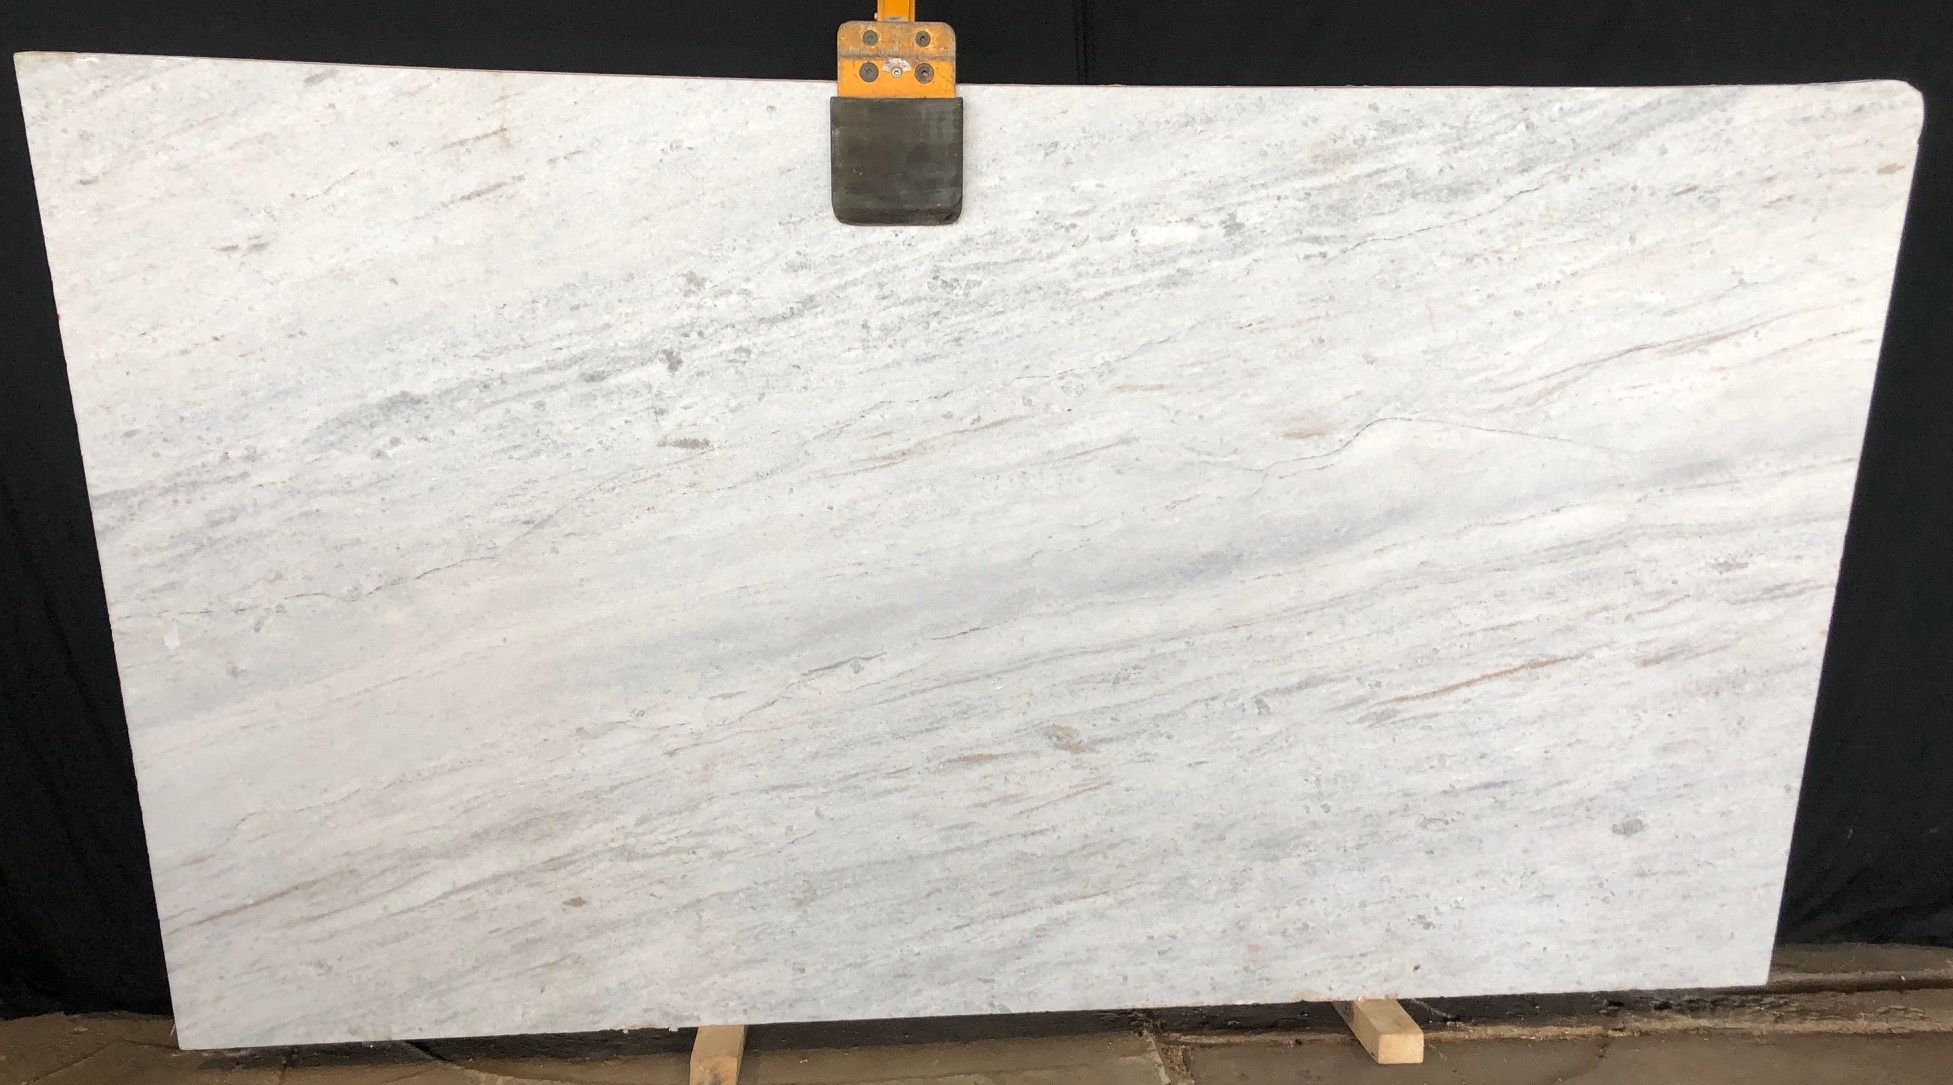 Glacierwhite Is Cool And Creamy With Flecks Of Beige Reds And Pinks In Some Stones We Just Receive A New Bundle Of G Granite Countertops Granite Slab